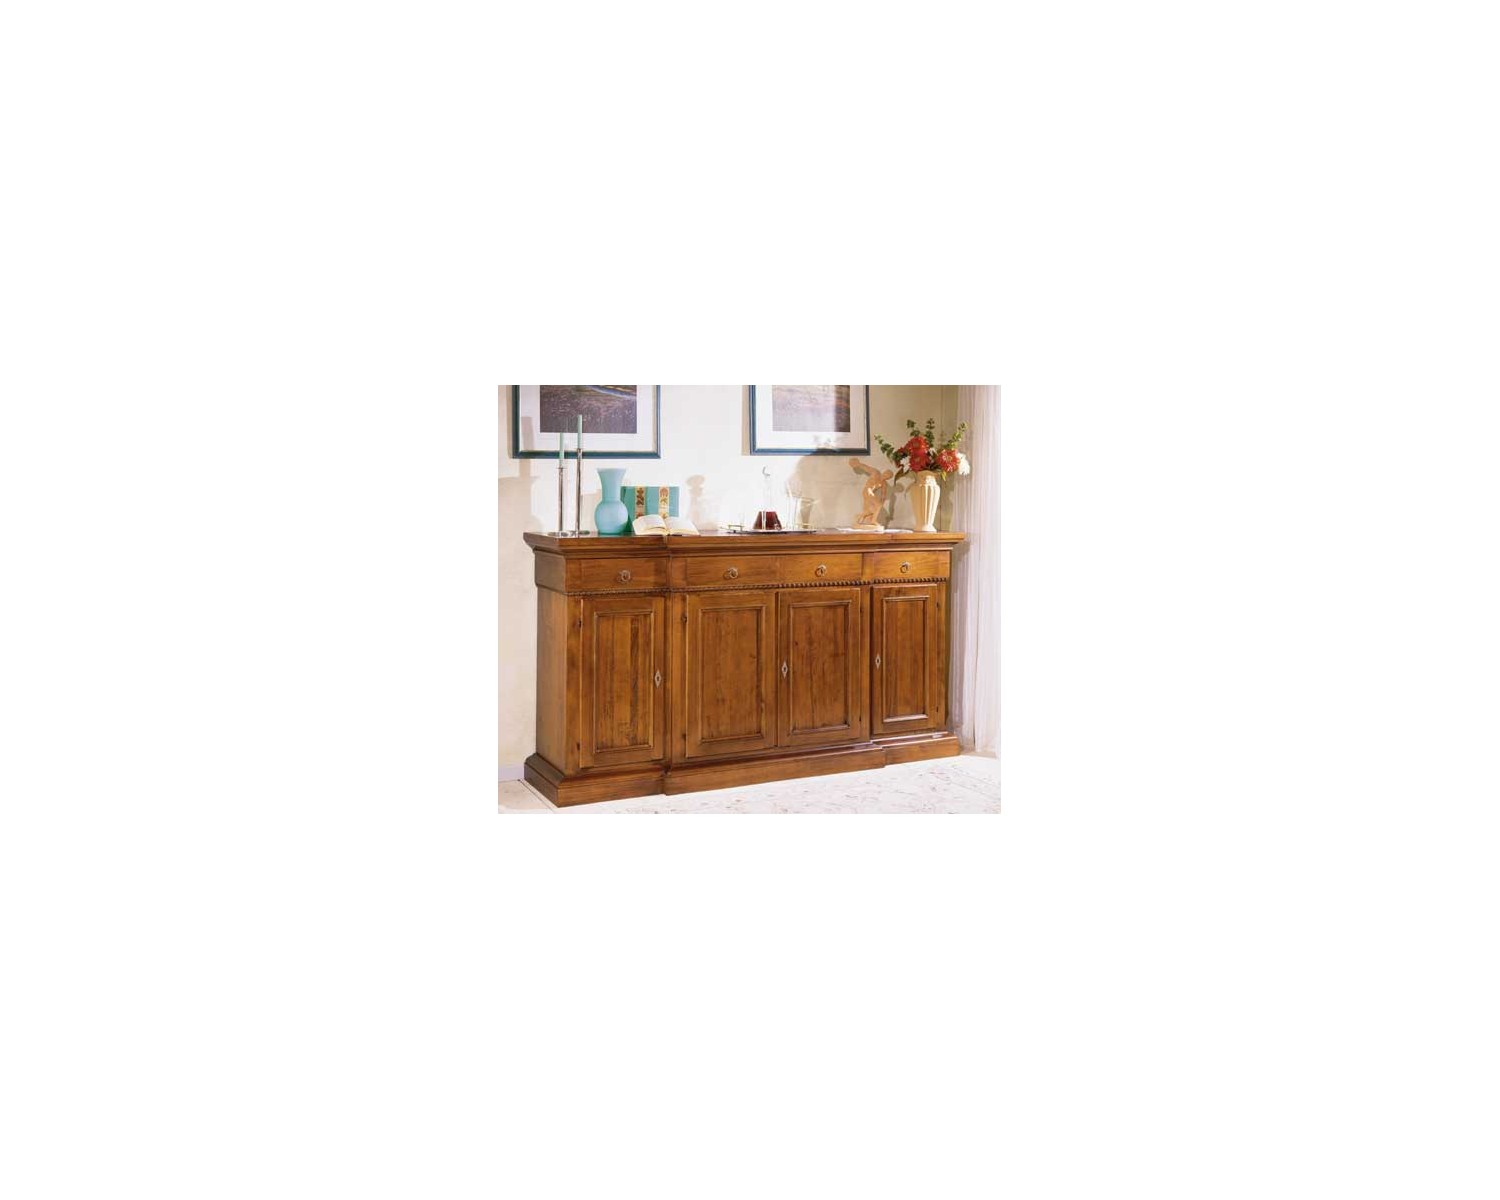 Credenza Moderna 4 Ante Basic : Duna sideboard with push pull doors napol furniture